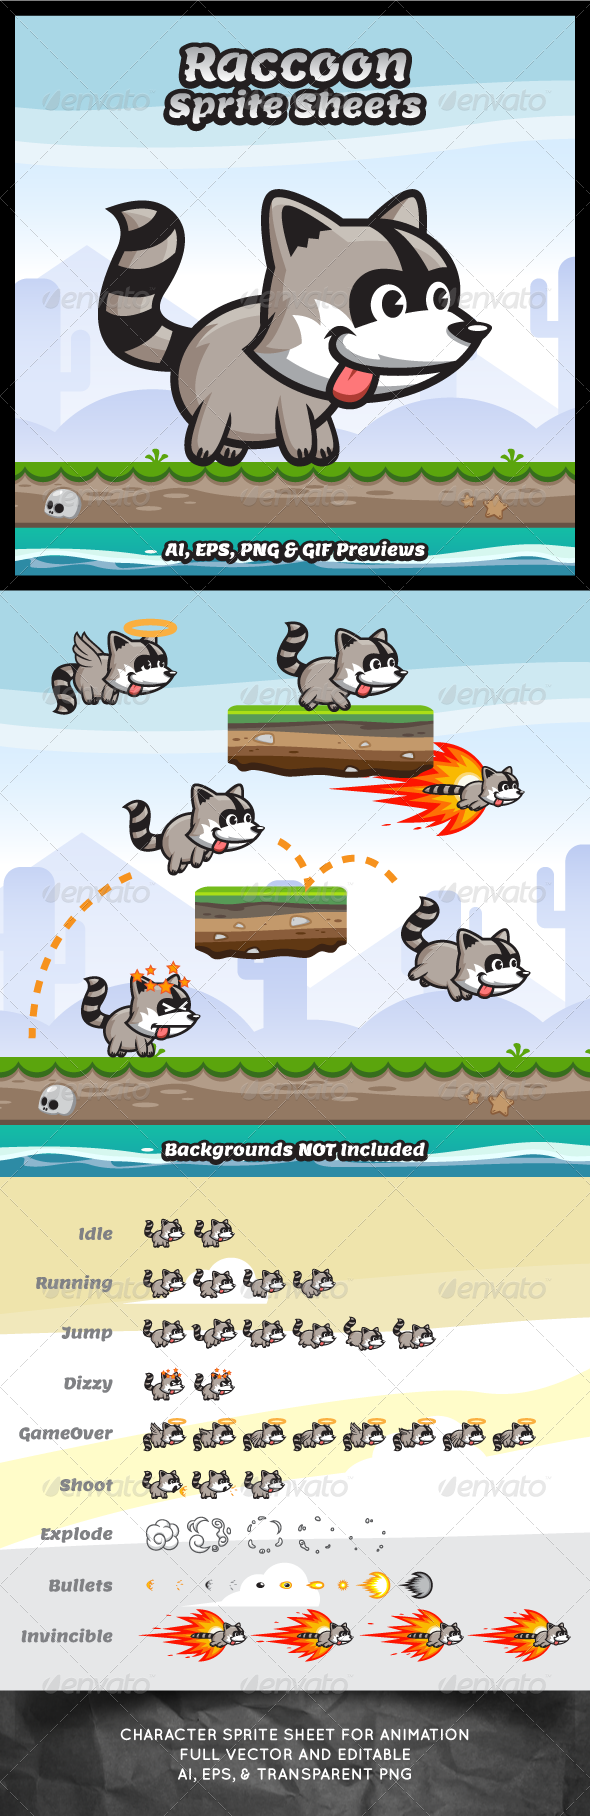 GraphicRiver Raccoon Game Character Sprite Sheets 8272174